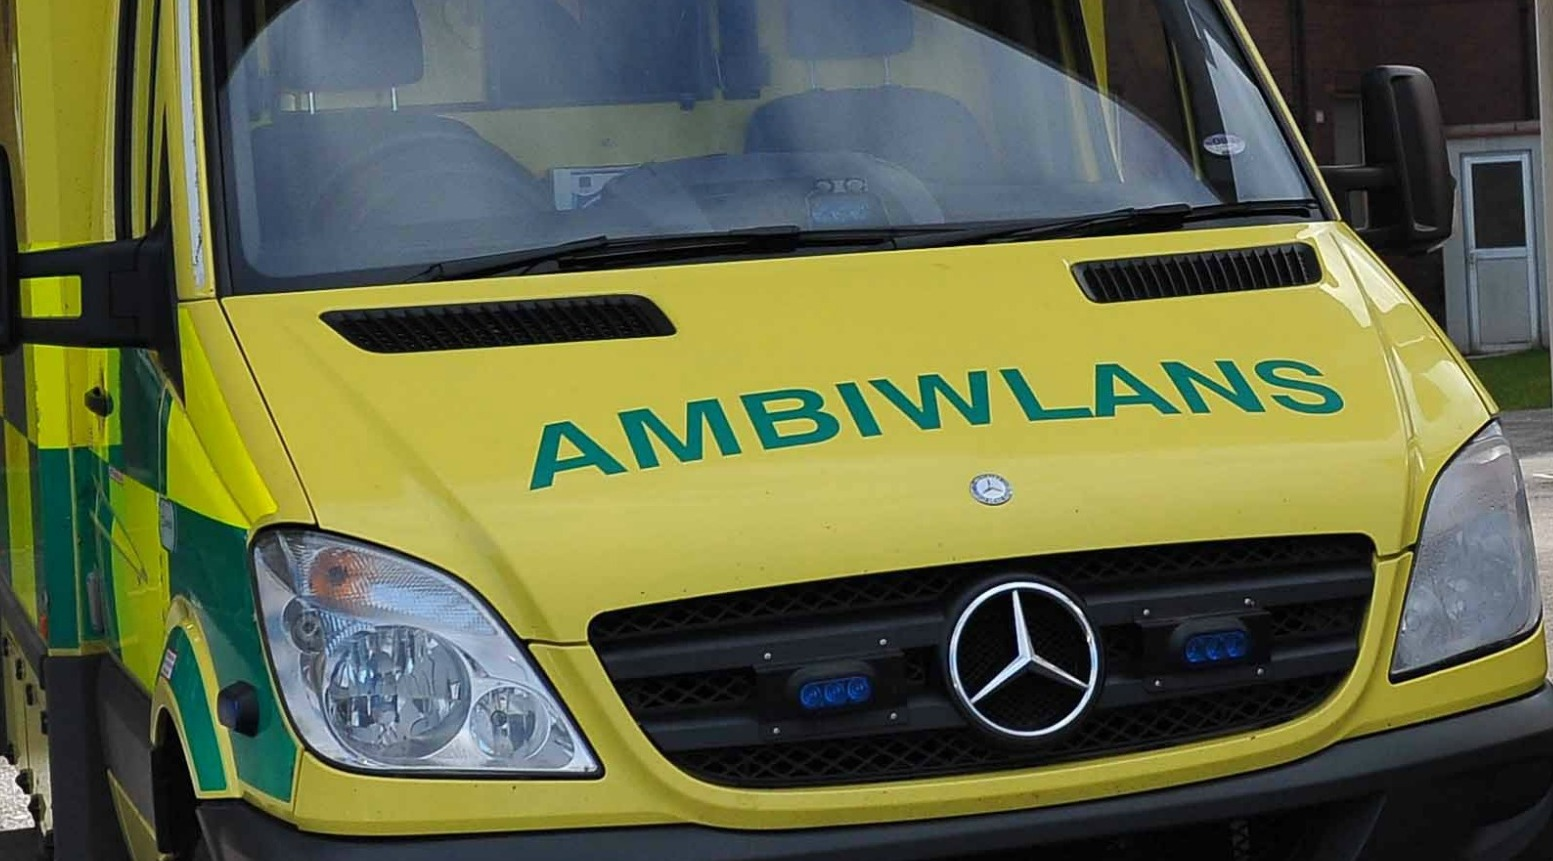 Welsh Ambulance attended